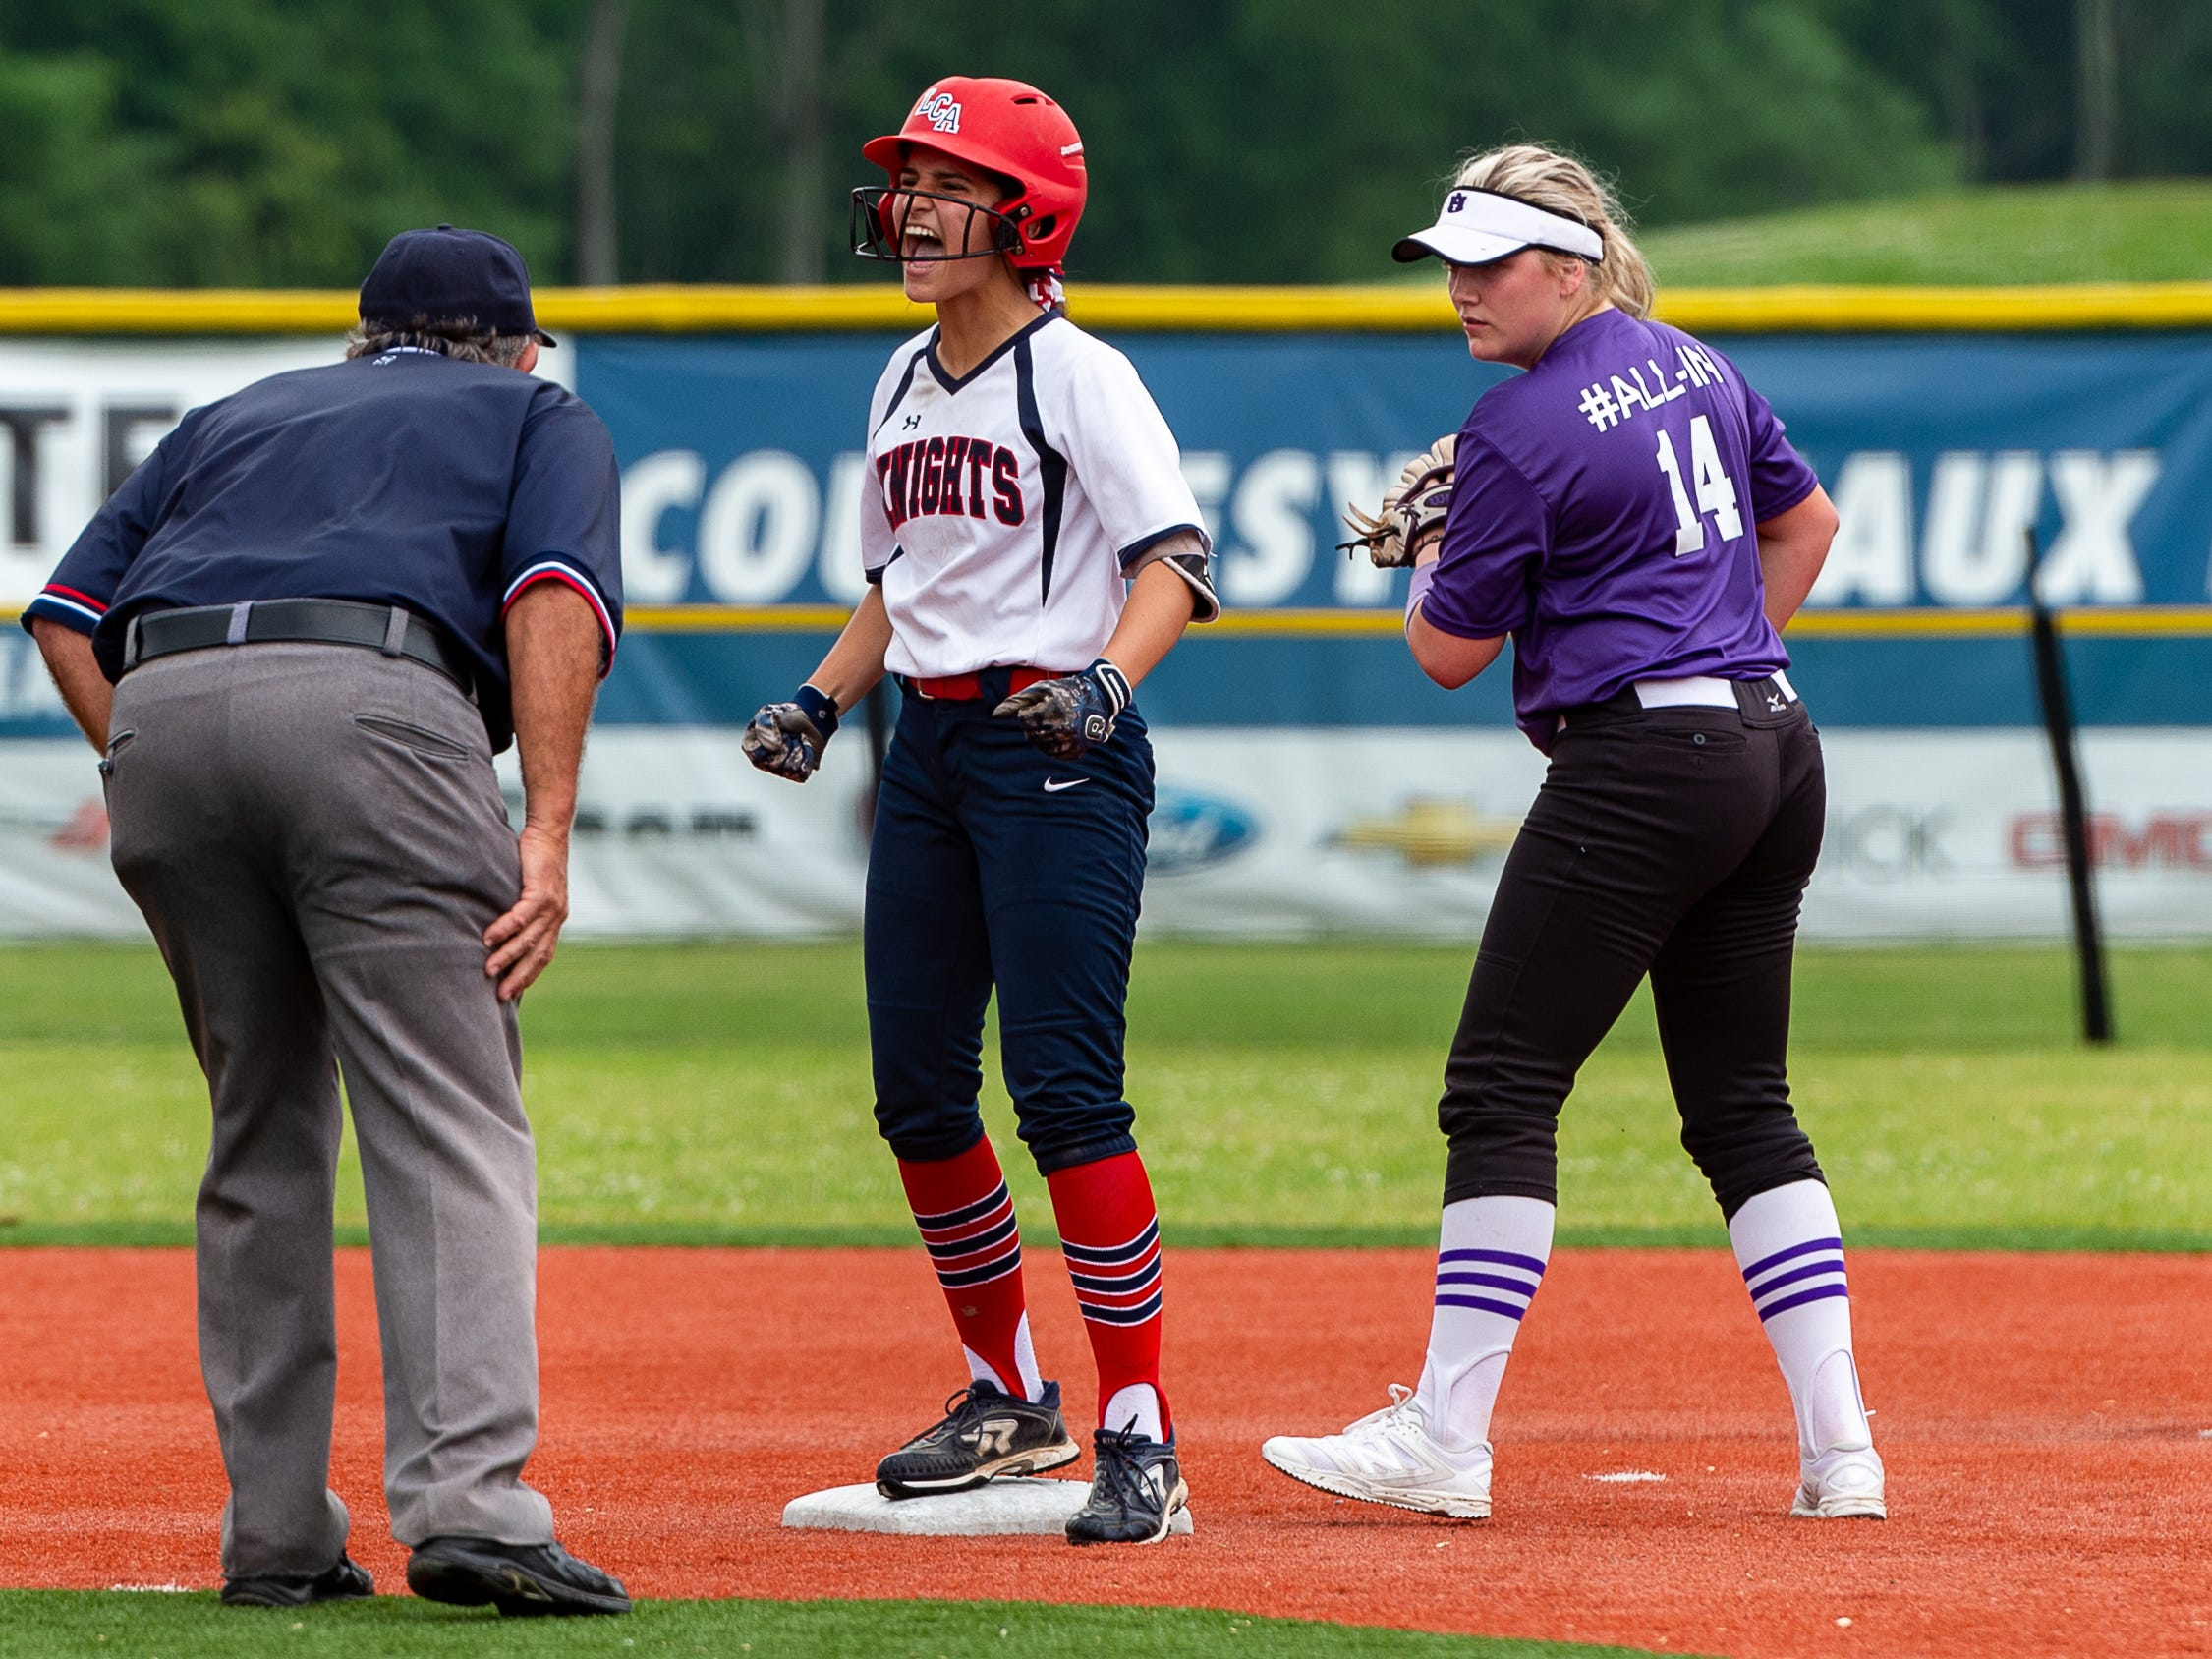 Janci Aube' stands on second after hitting a double as Lafayette Christian Academy softball takes on University Academy in the forst round of the LHSAA playoffs. Friday, April 12, 2019.